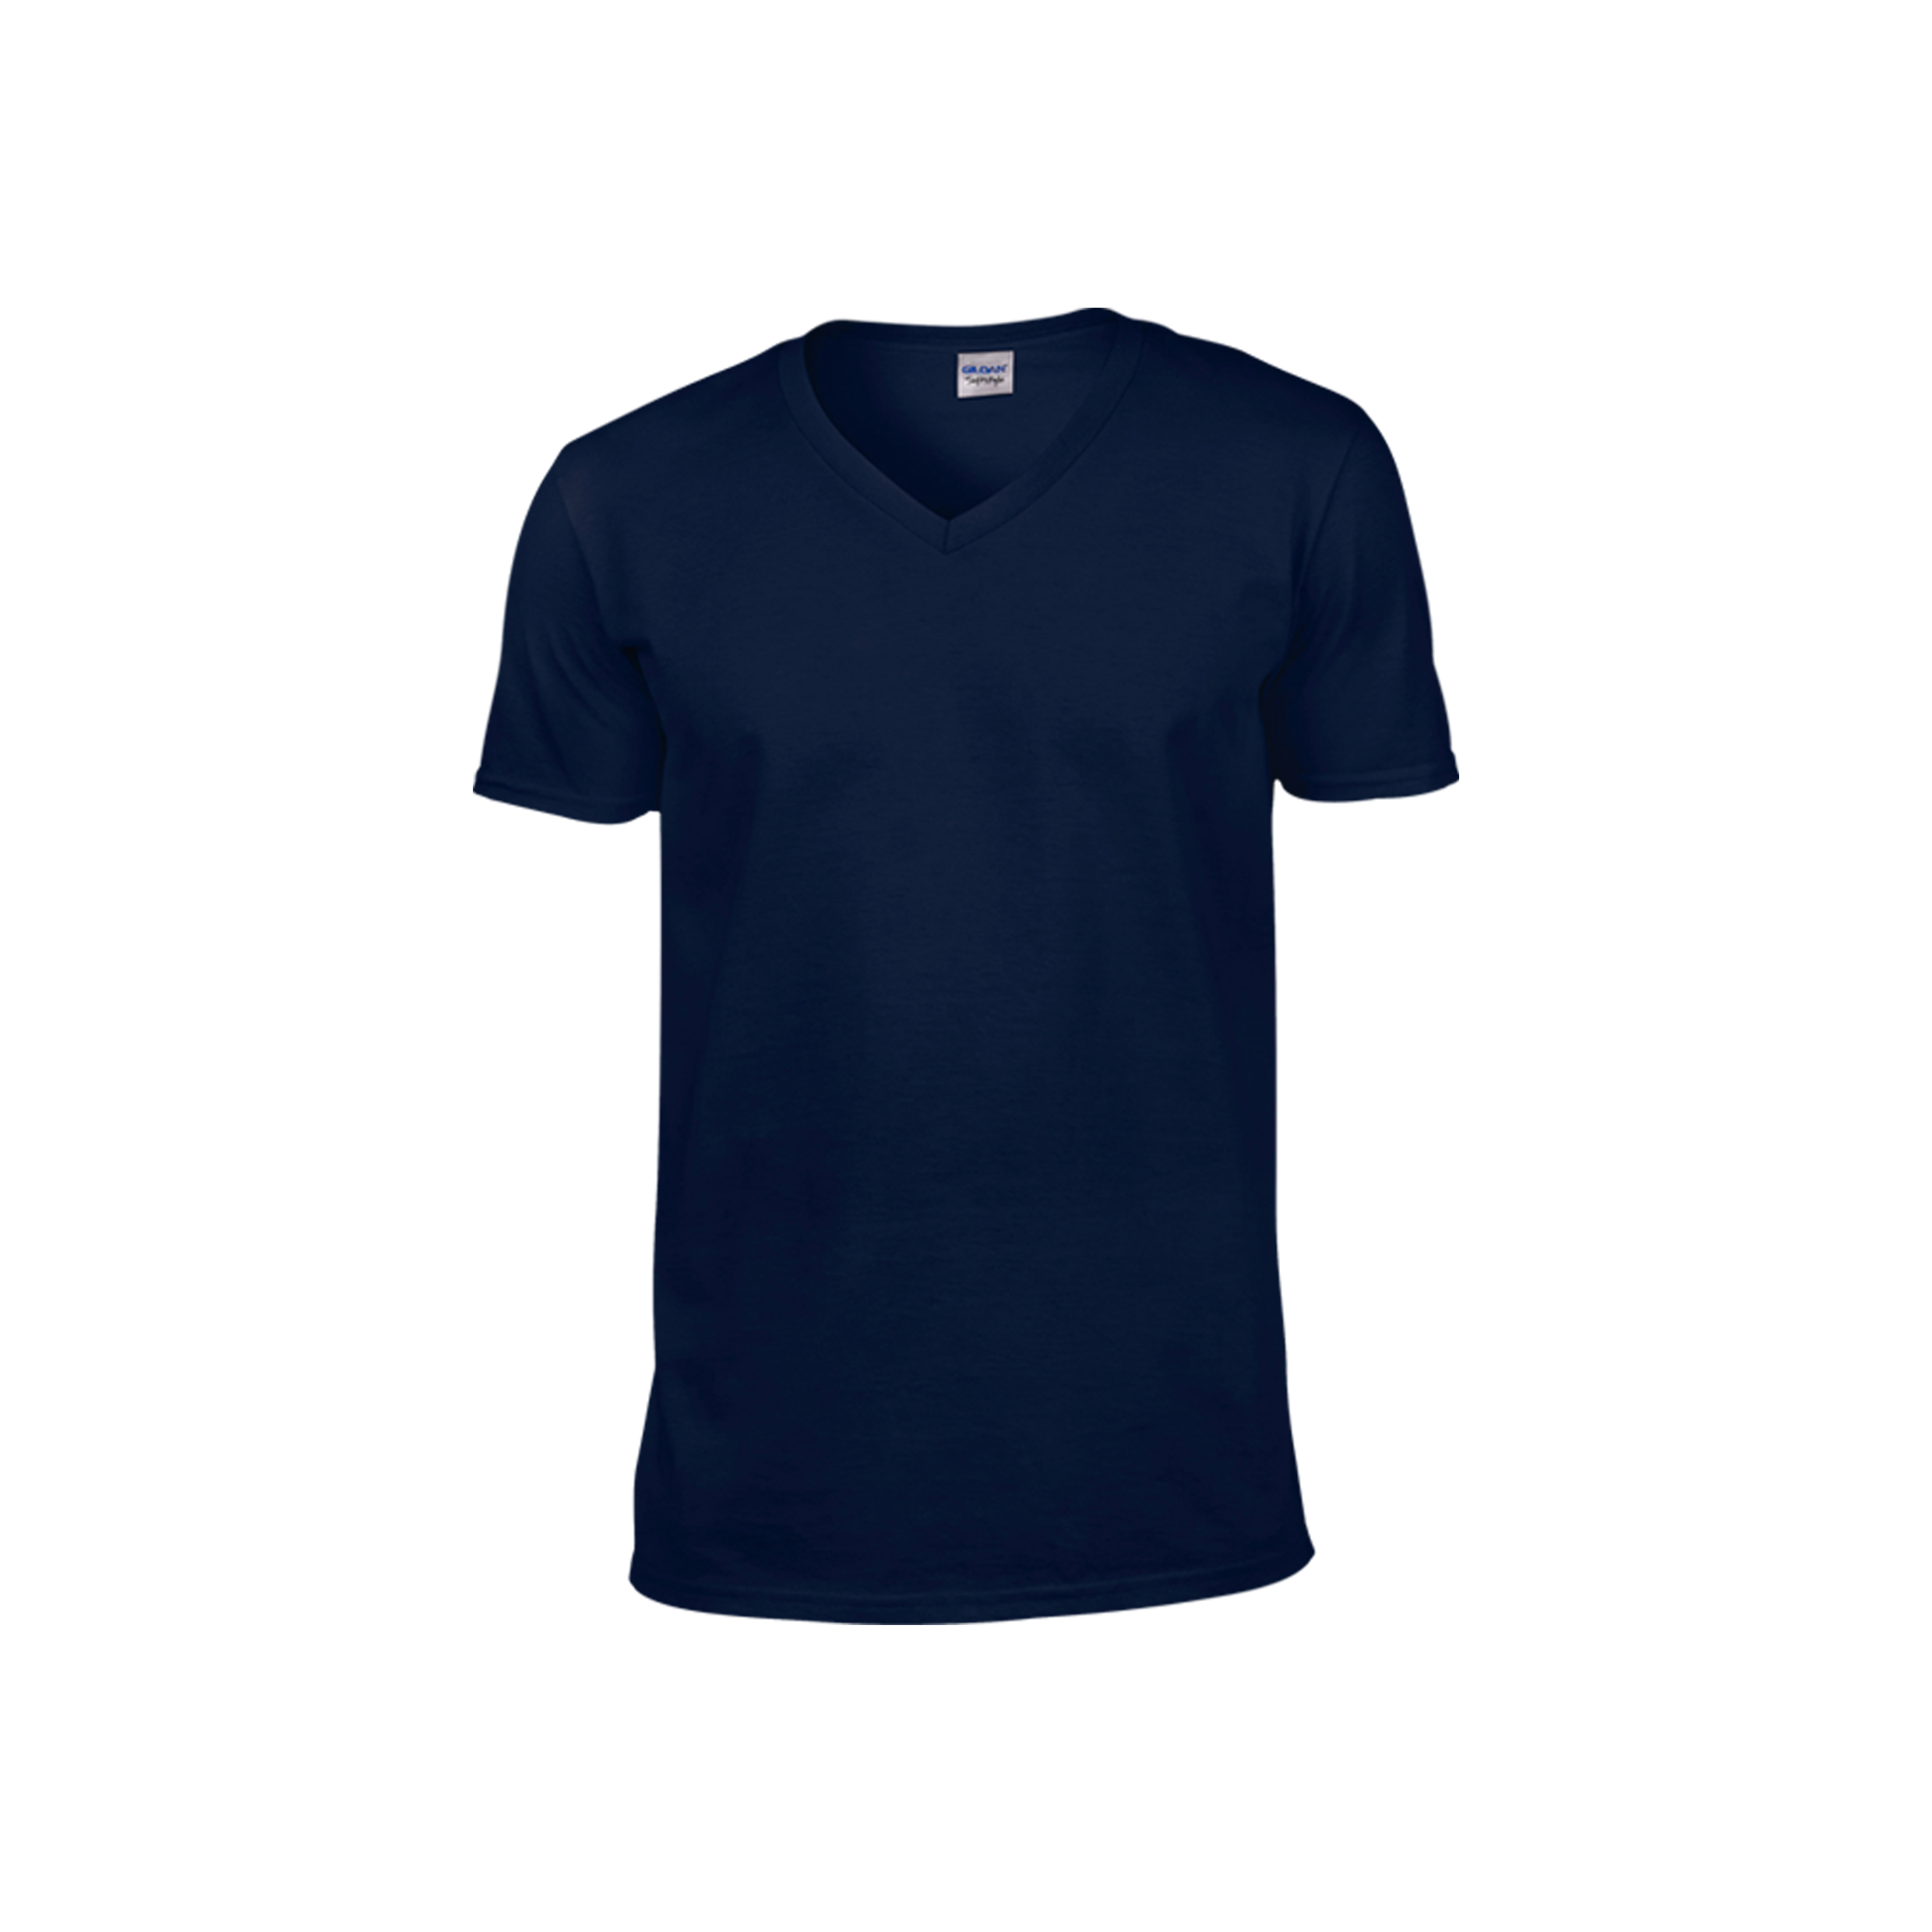 Gildan softstyle v neck t shirt 63v00 5 colors t shirt for Gildan t shirts online